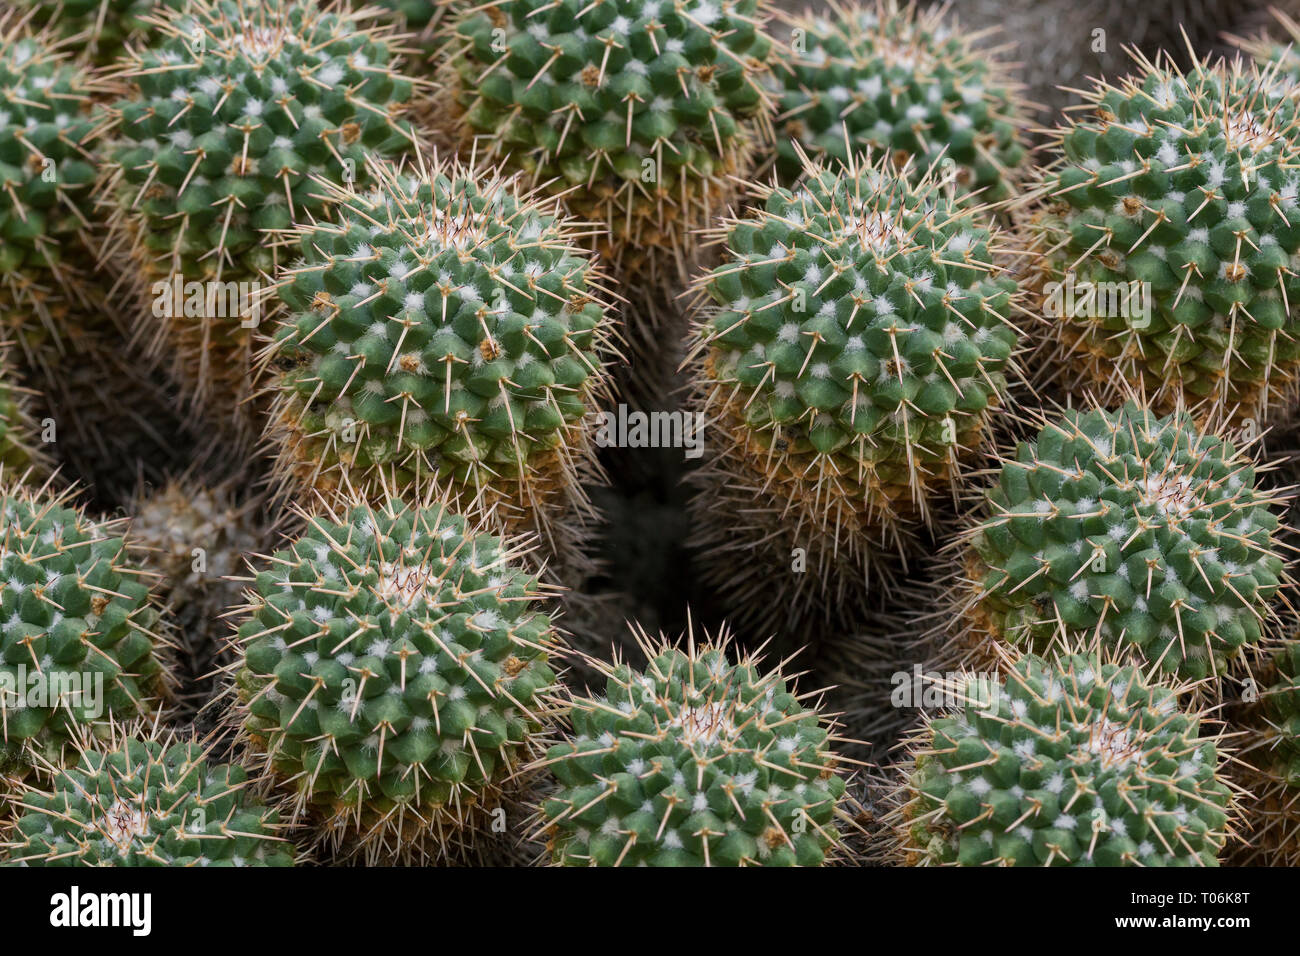 Close-up of several spiky Mammillaria compressa cacti viewed from above. Stock Photo